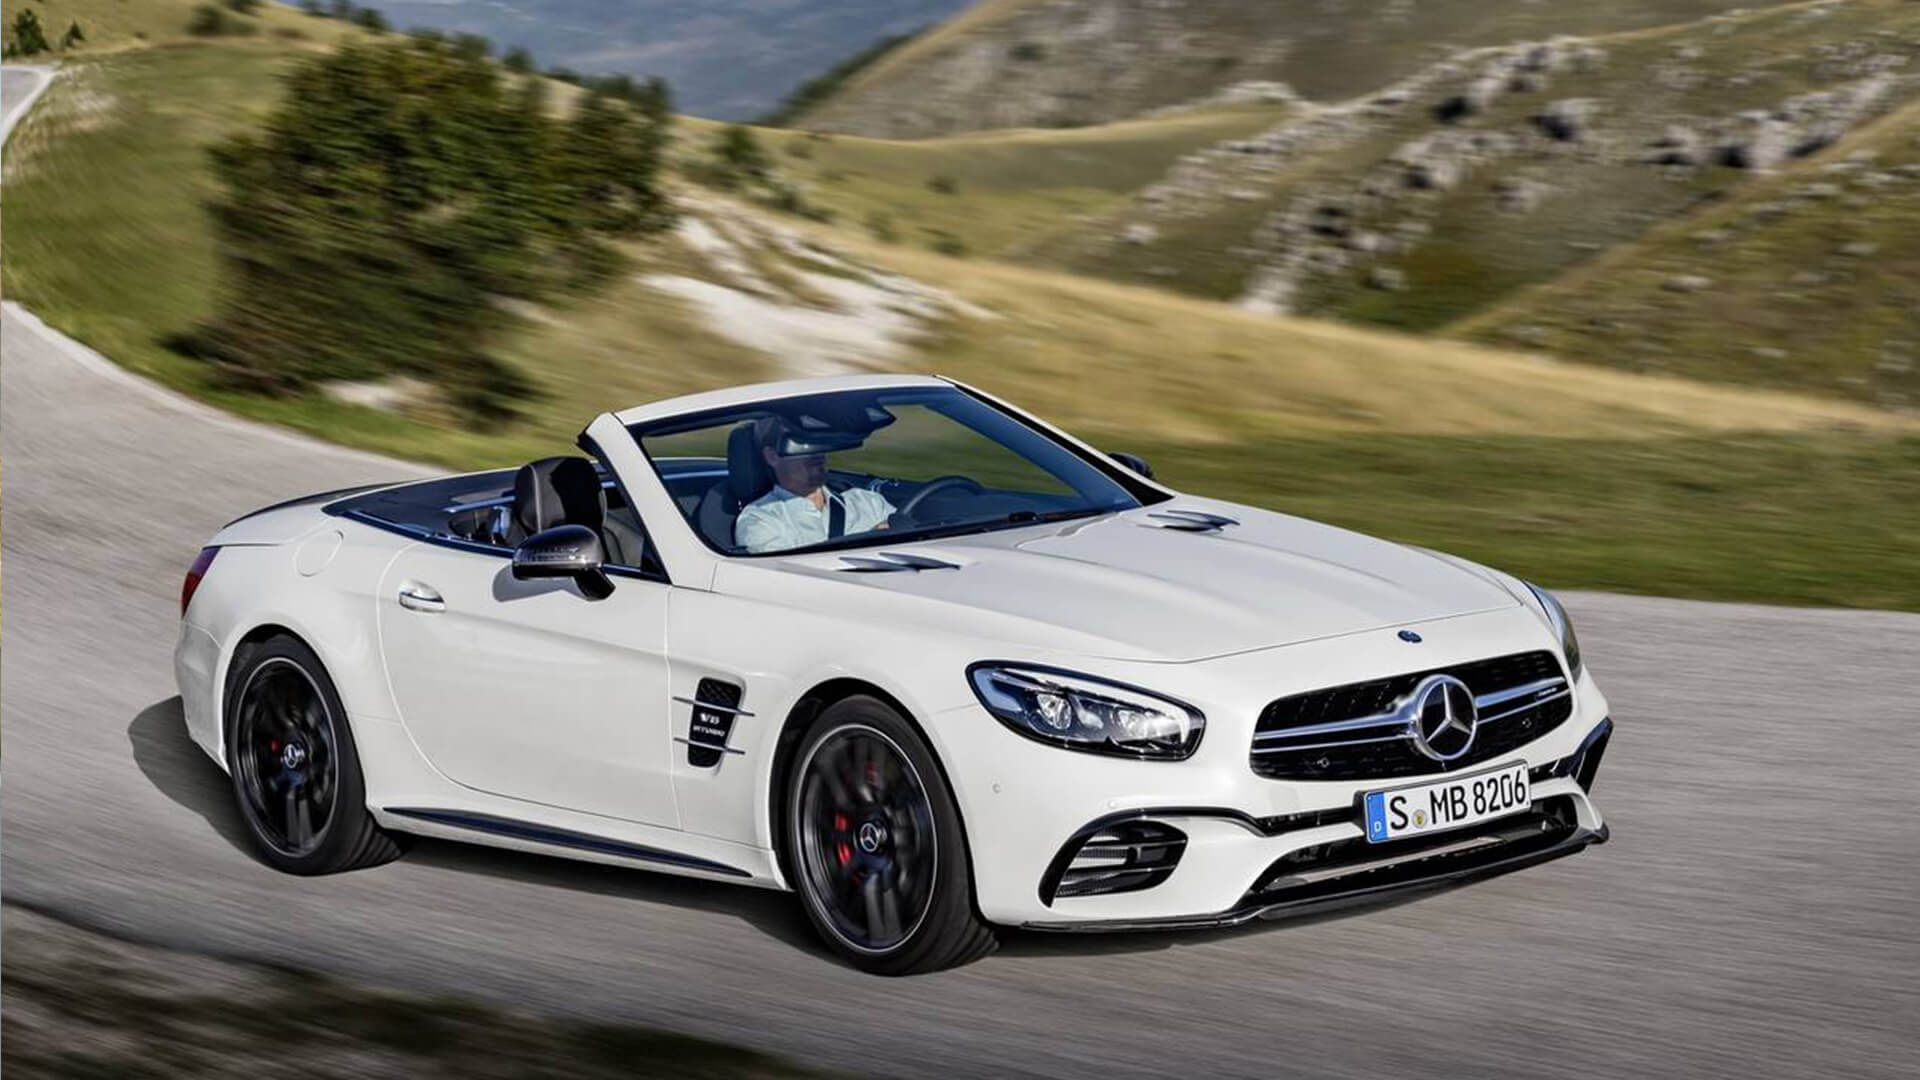 luxury sports cars – 2016 Mercedes-Benz SL-Class | Pho2Car ...